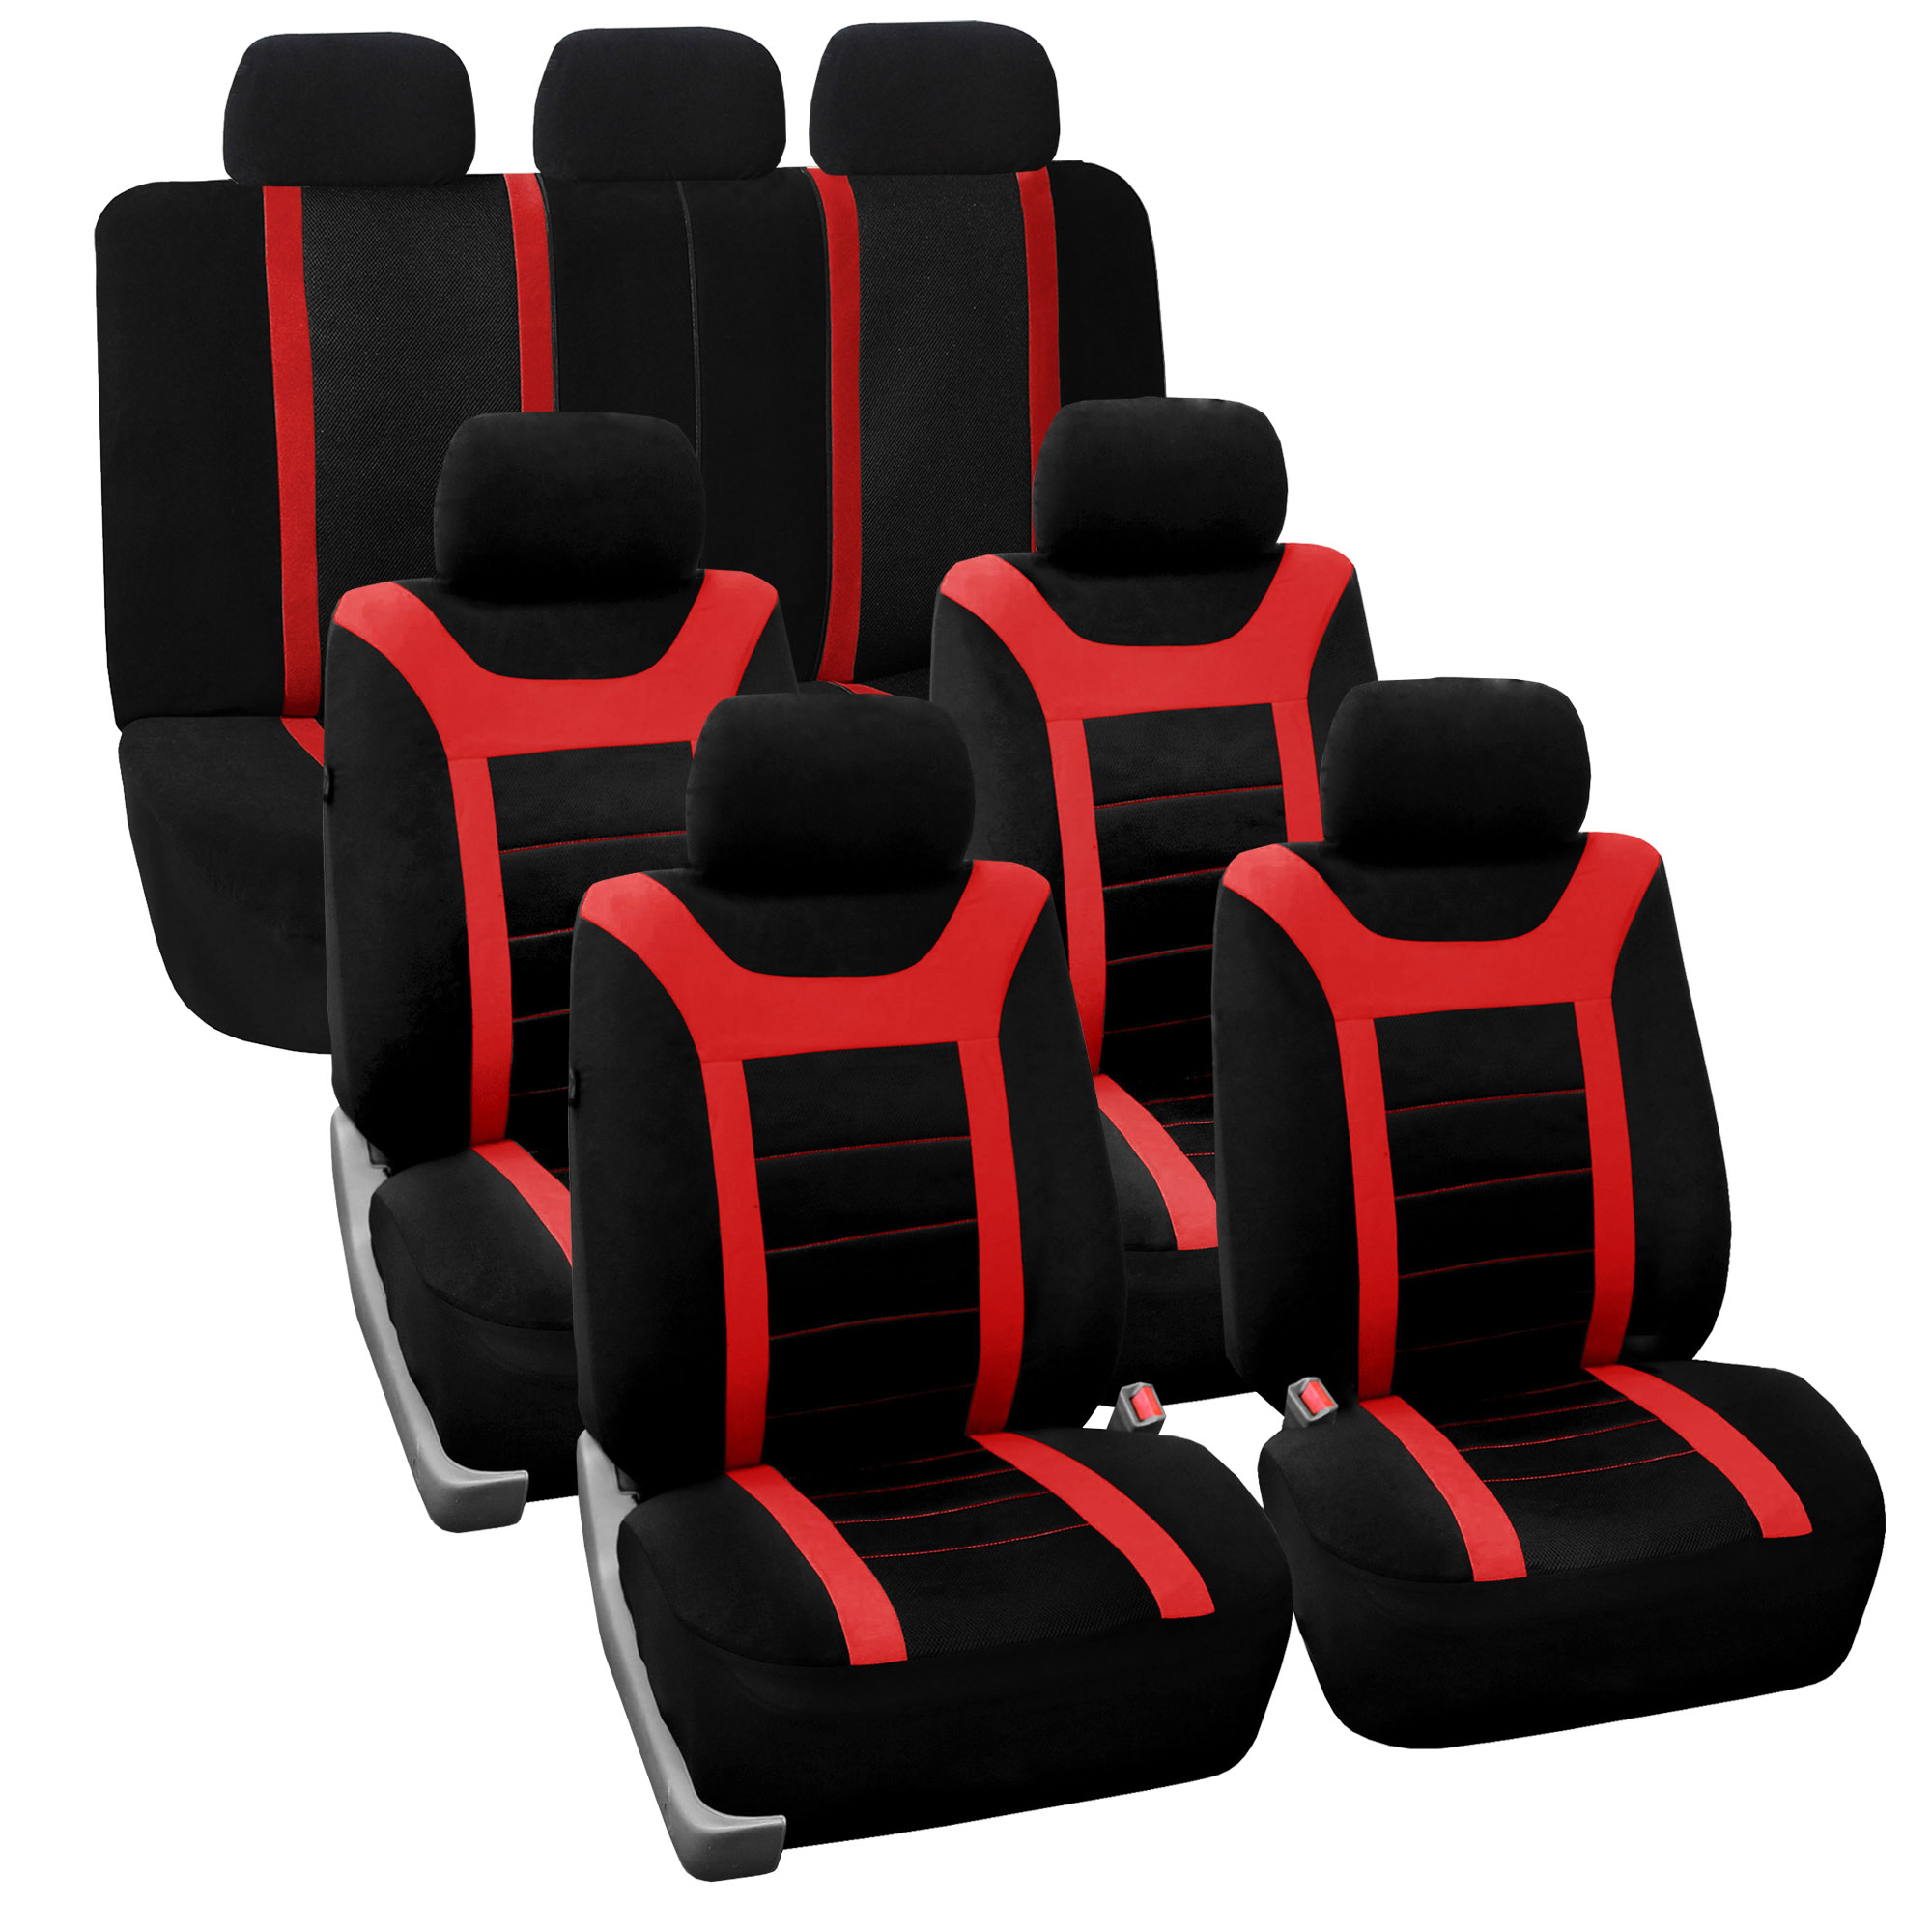 3 Row Car Seat Cover Set Top Quality Luxury For SUV Truck